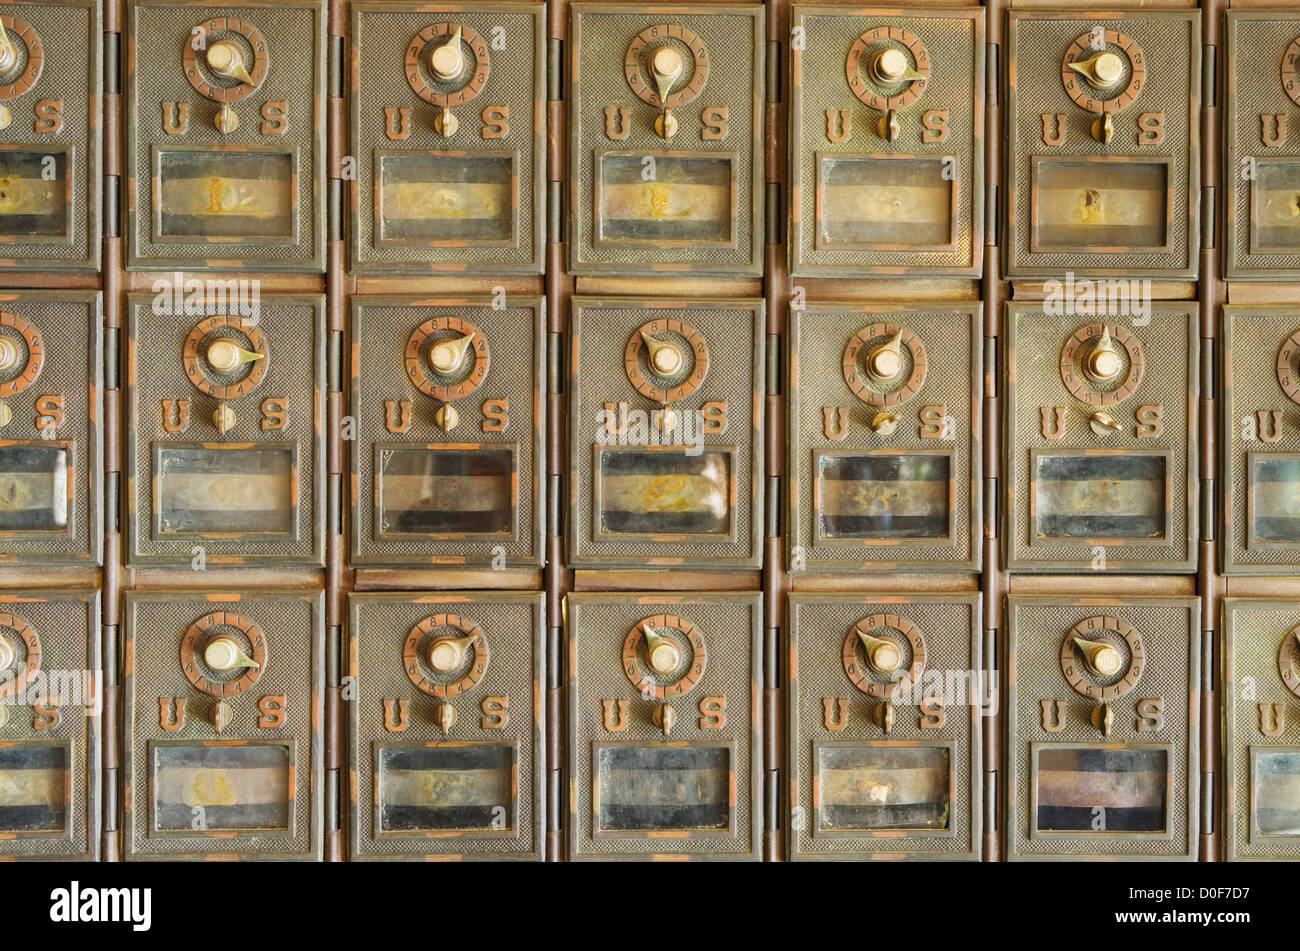 old brass US mail pigeonhole mailboxes with combination locks - Stock Image